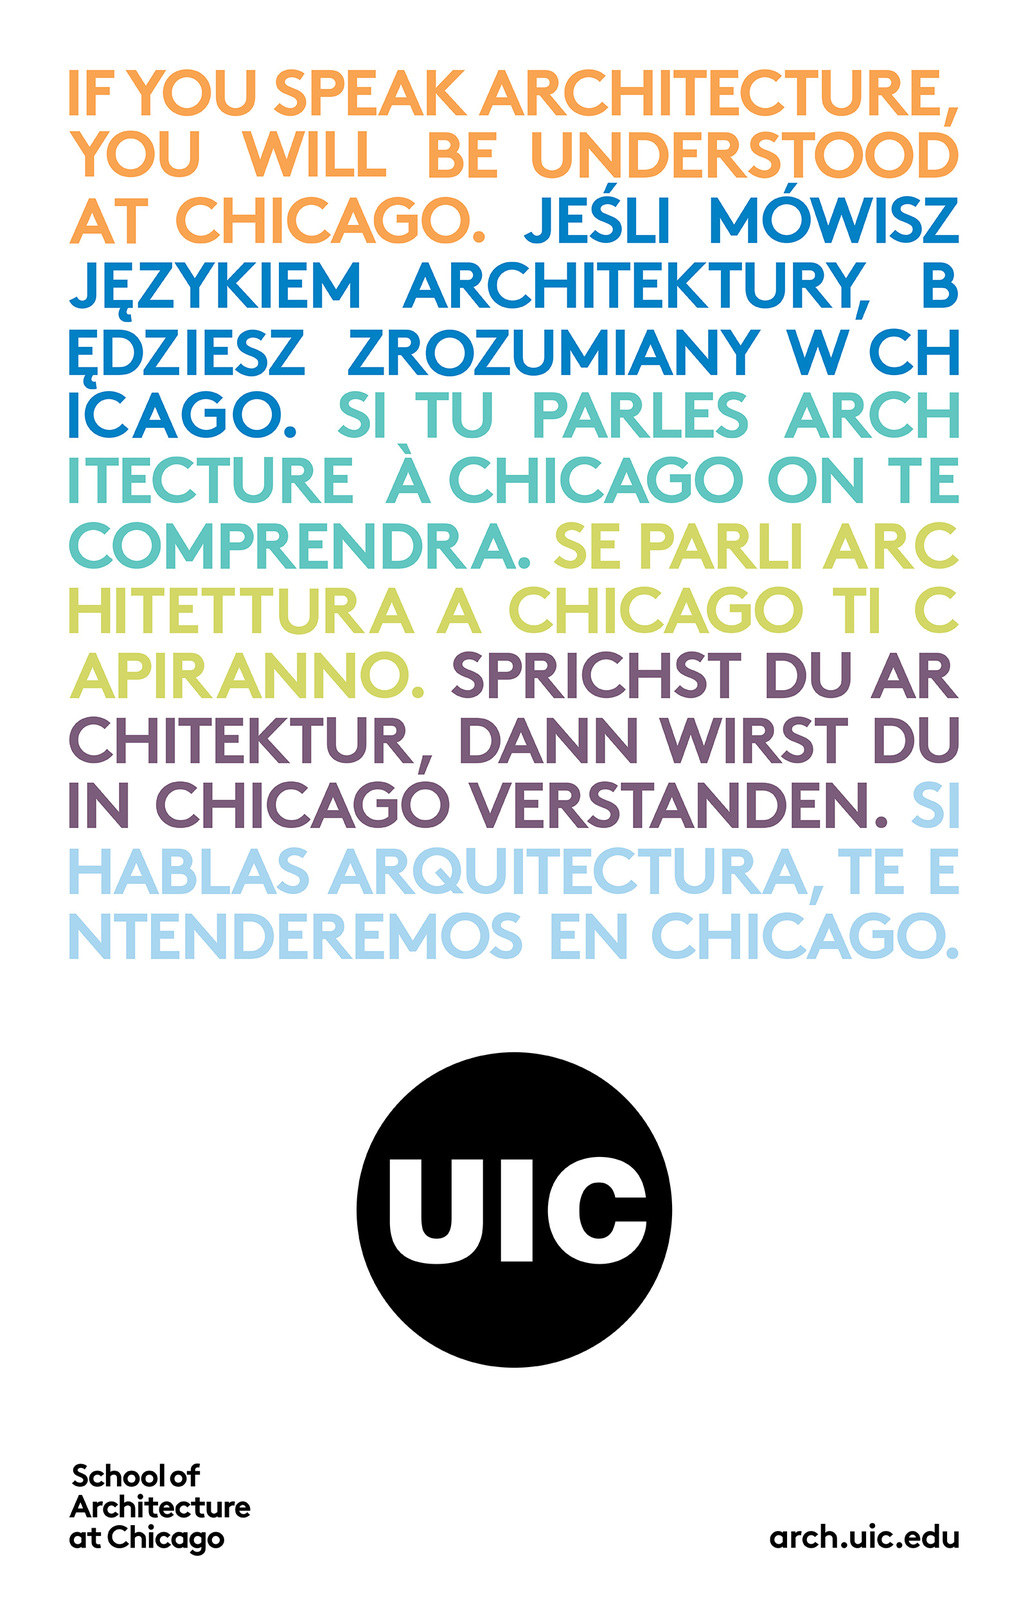 Courtesy of UIC School of Architecture.